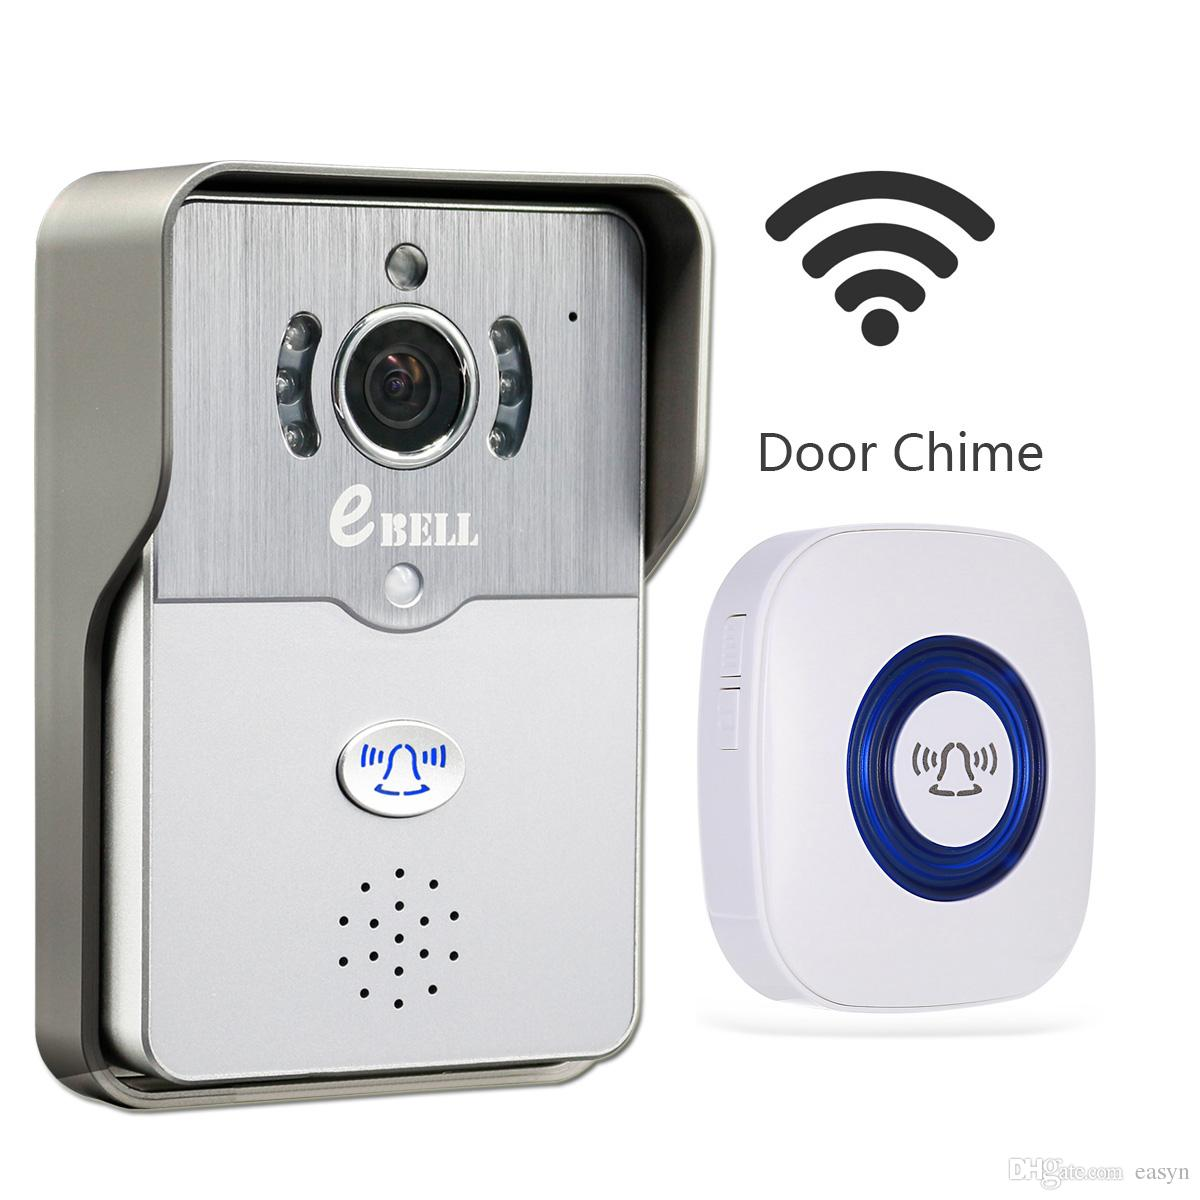 ... Camera W/ Indoor Chime Support Mobile Phone Unlock 2 Way Audio Talking Night Vision Alarm Video Phone Video Phone Door From Easyn $70.36| Dhgate.  sc 1 st  DHgate.com & Ebell Home Security Hd Wifi Video Doorbell Camera W/ Indoor Chime ...